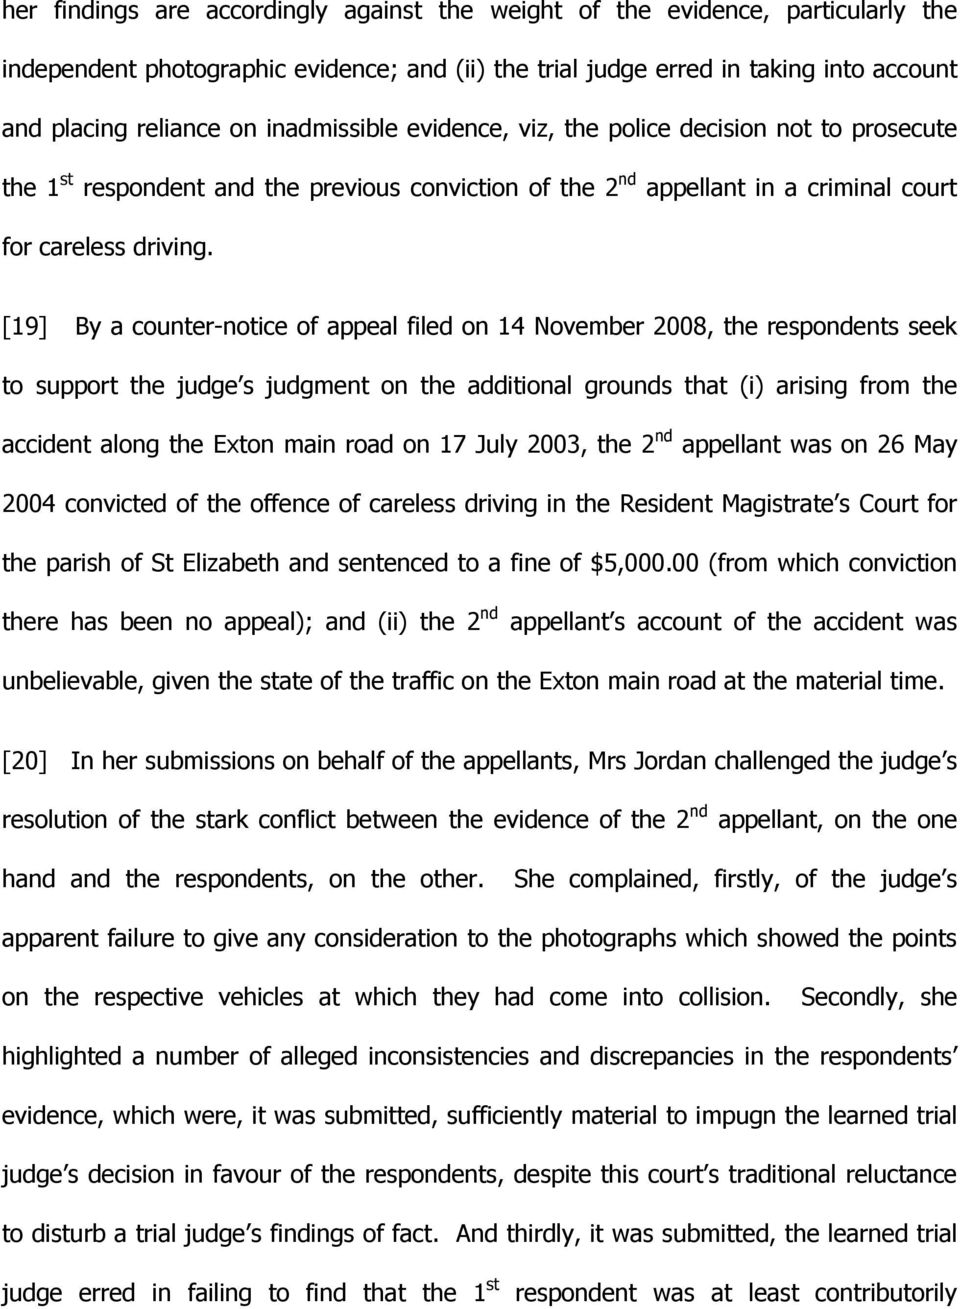 [19] By a counter-notice of appeal filed on 14 November 2008, the respondents seek to support the judge s judgment on the additional grounds that (i) arising from the accident along the Exton main